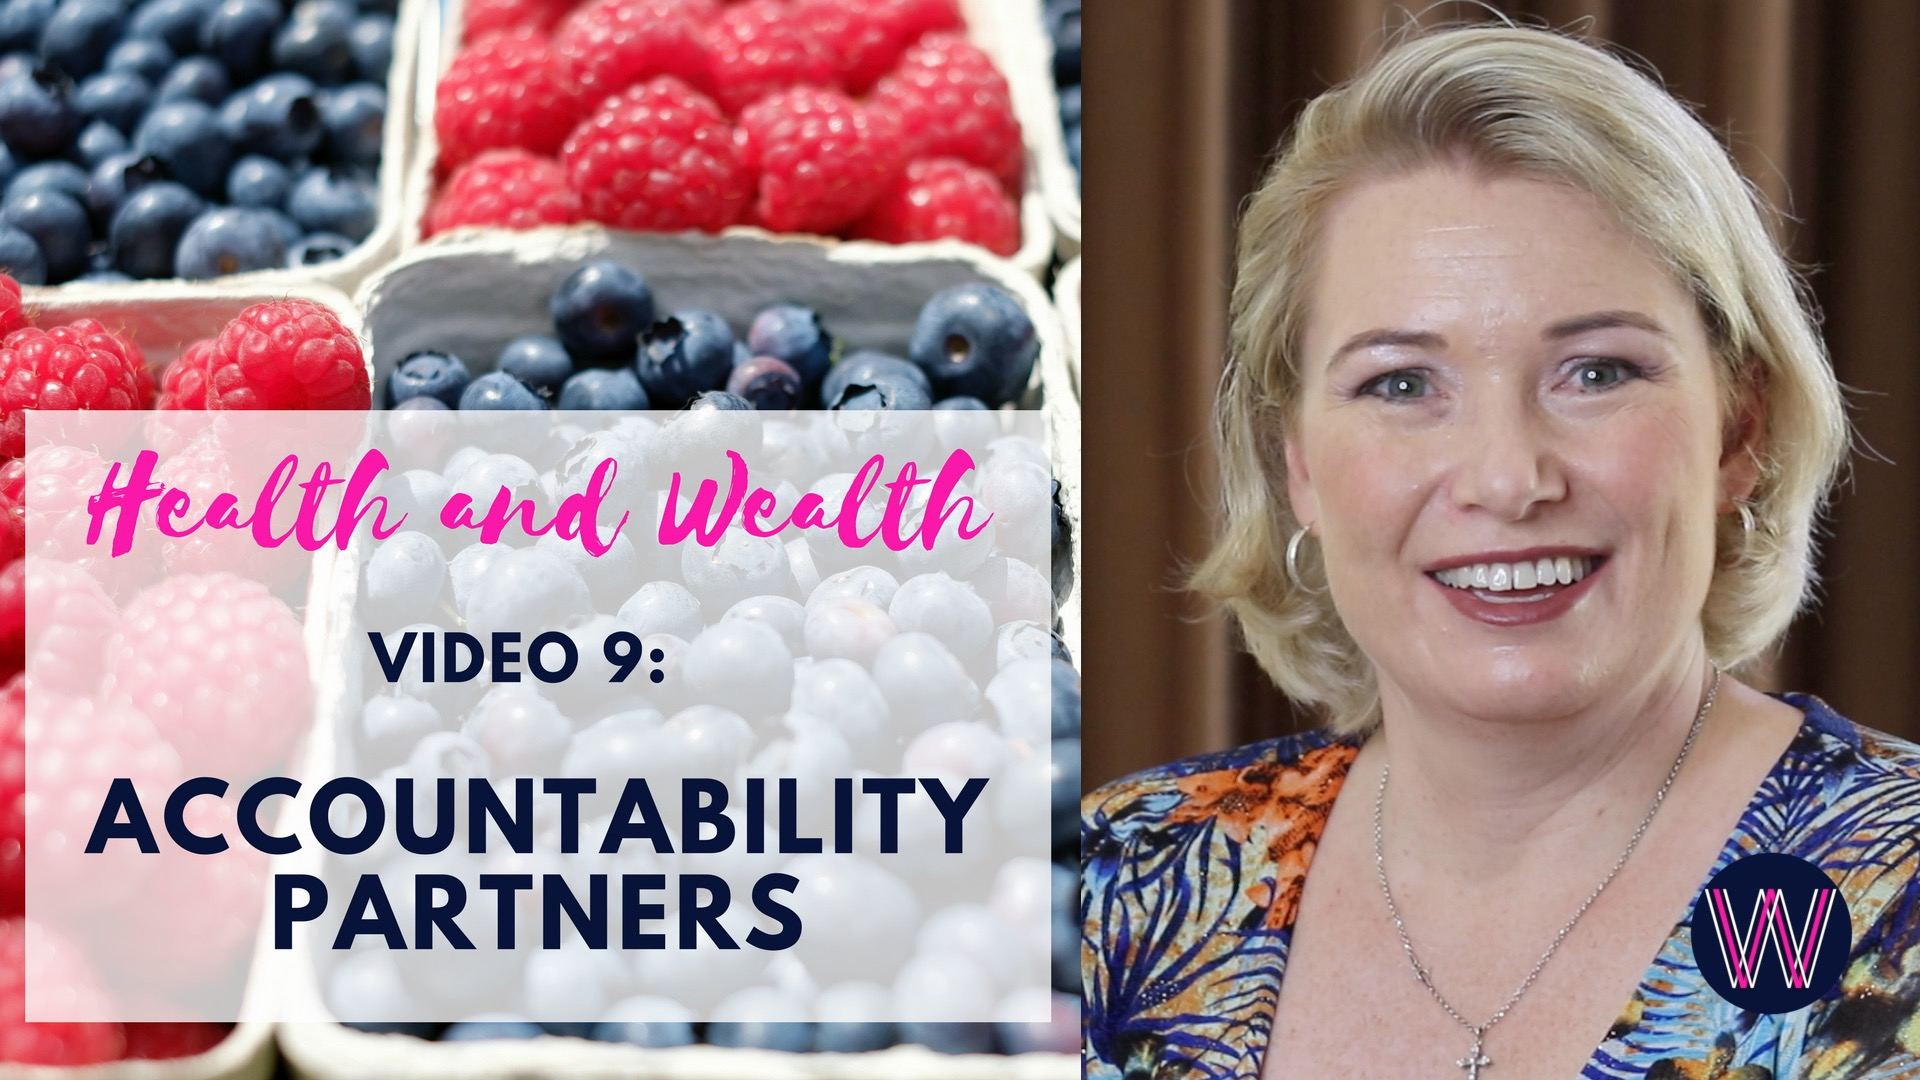 Video 10 – Accountability partners